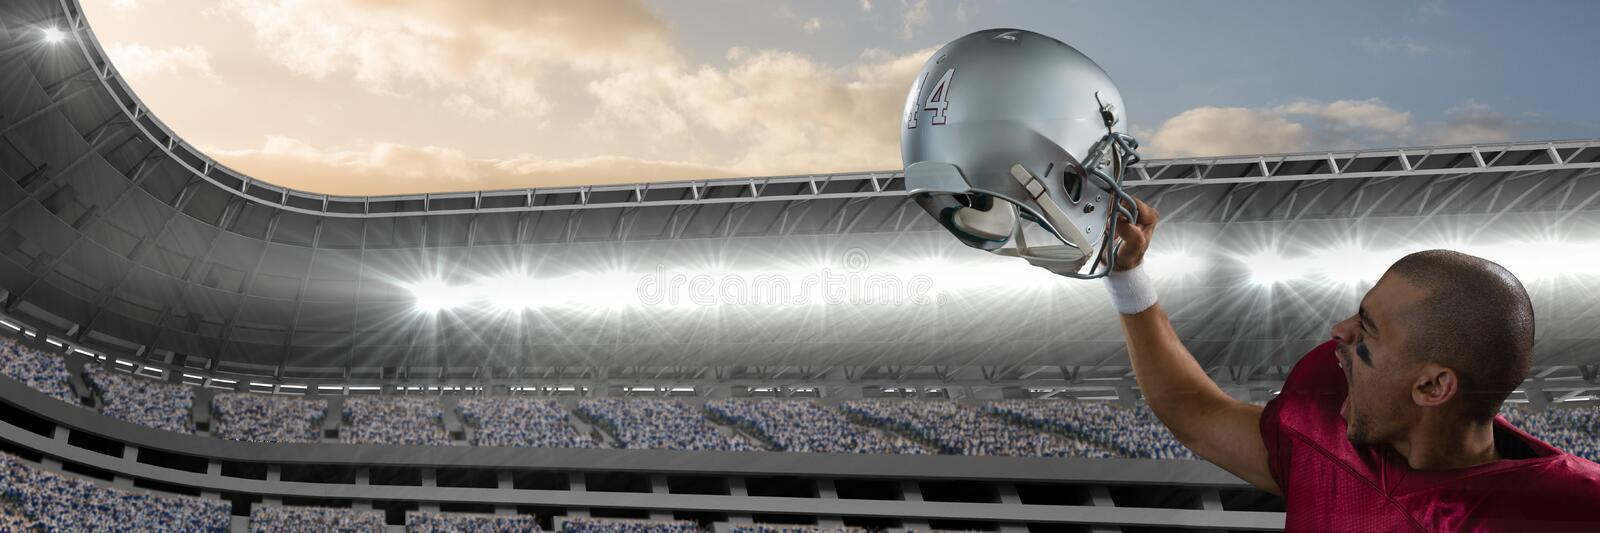 american football player holding up helmet royalty free stock photo